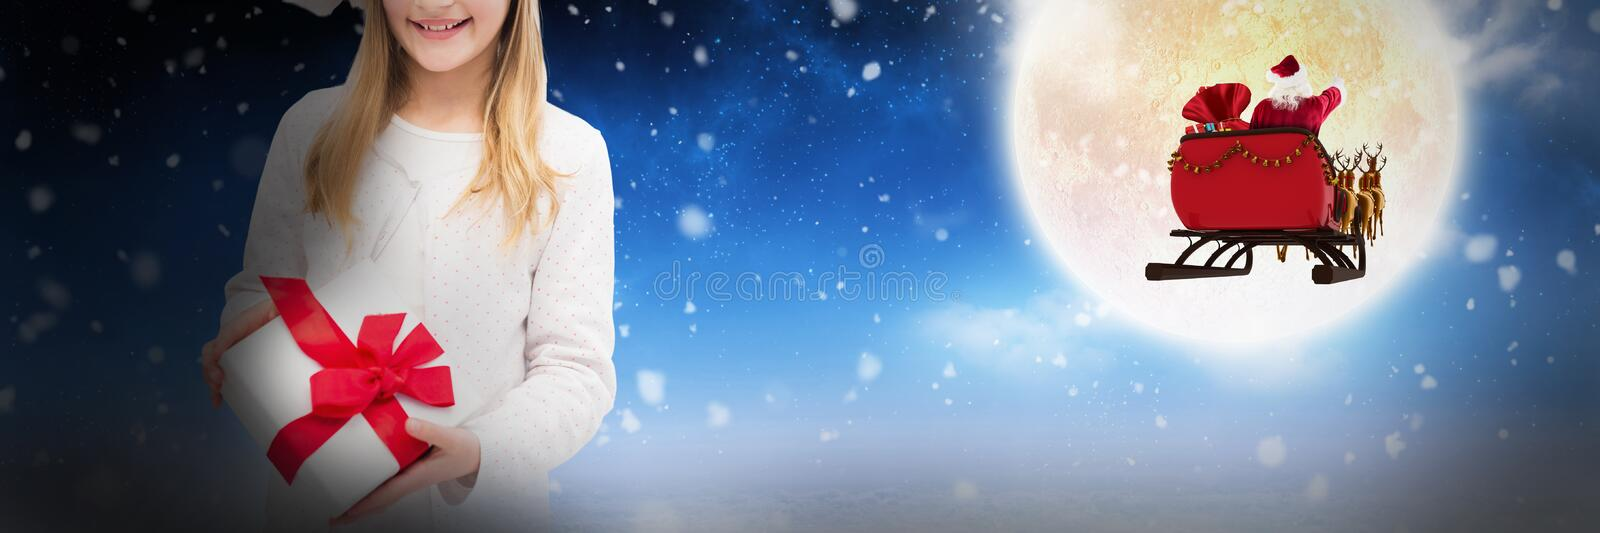 Composite image of portrait of happy girl holding christmas gift against white background stock photography